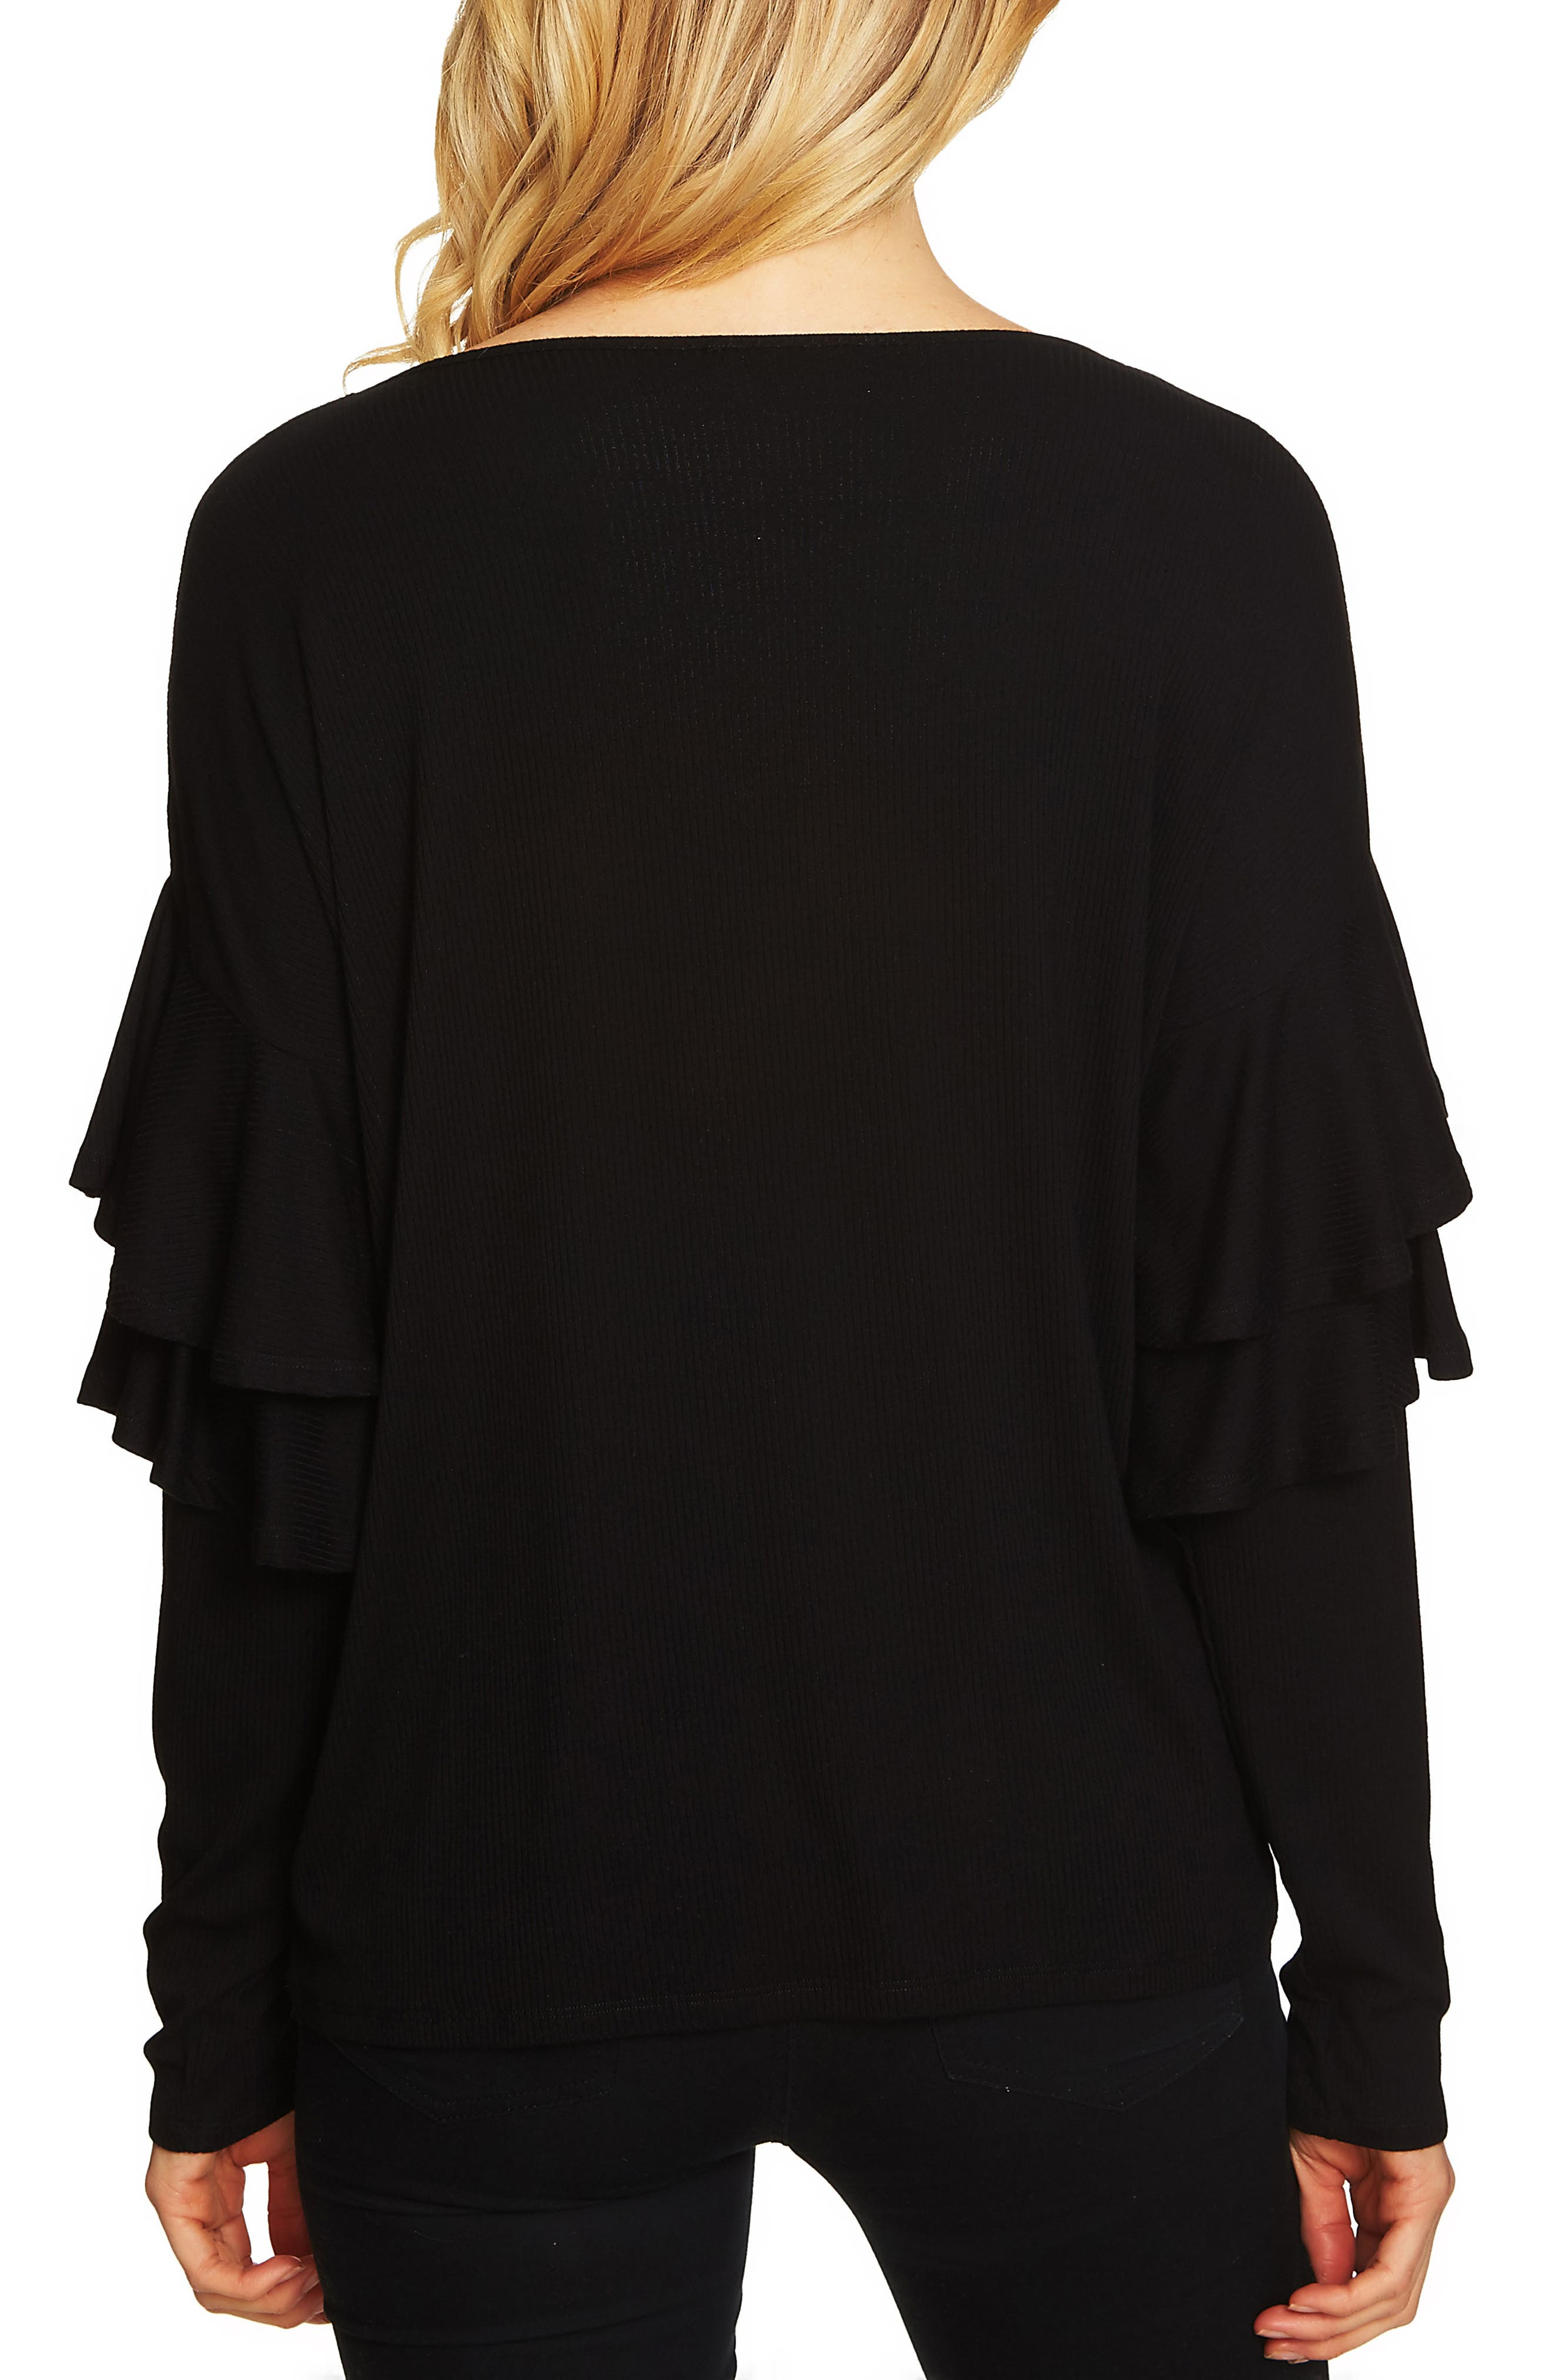 Tiered Ruffled Shoulder Ribbed Top,                             Alternate thumbnail 2, color,                             001